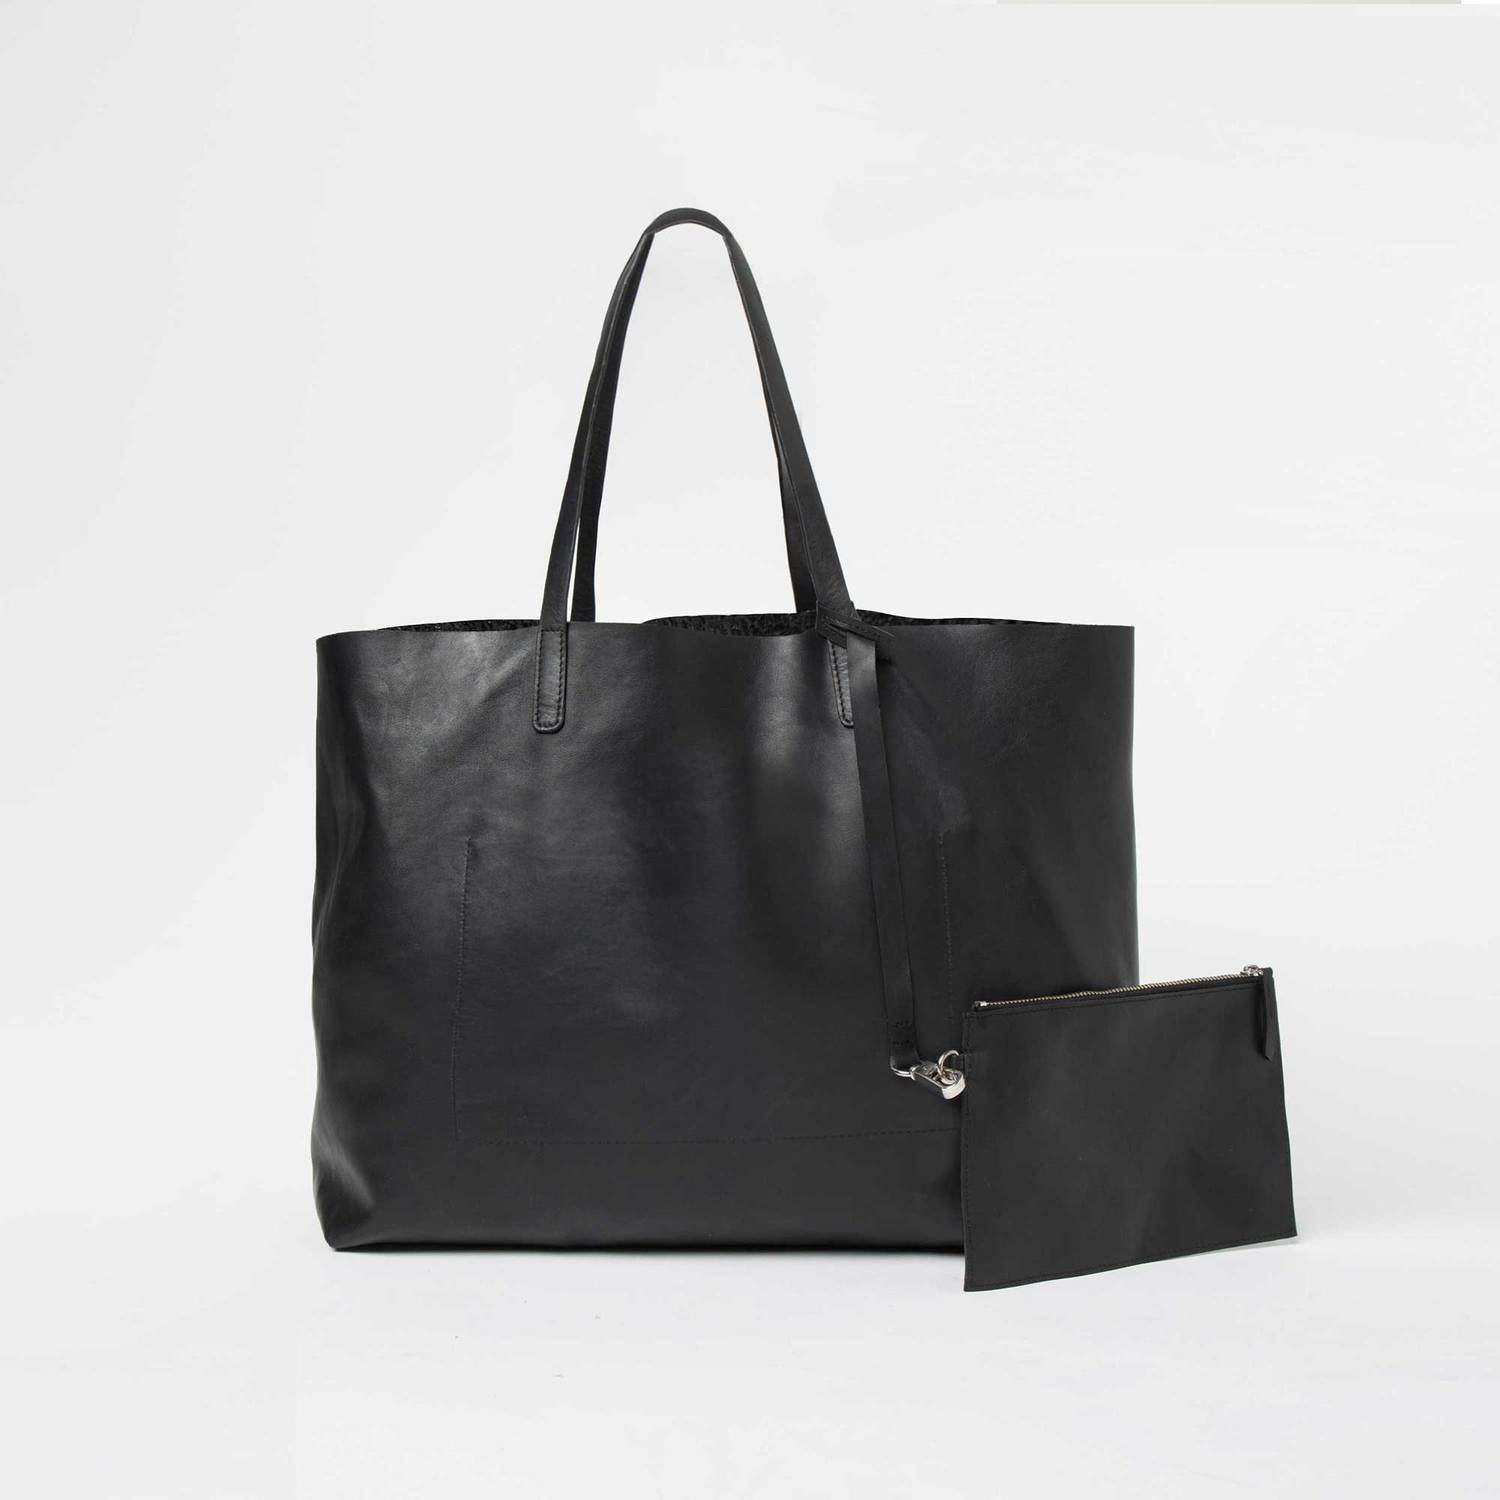 Womens Leather Tote Bag In Black by Dstld